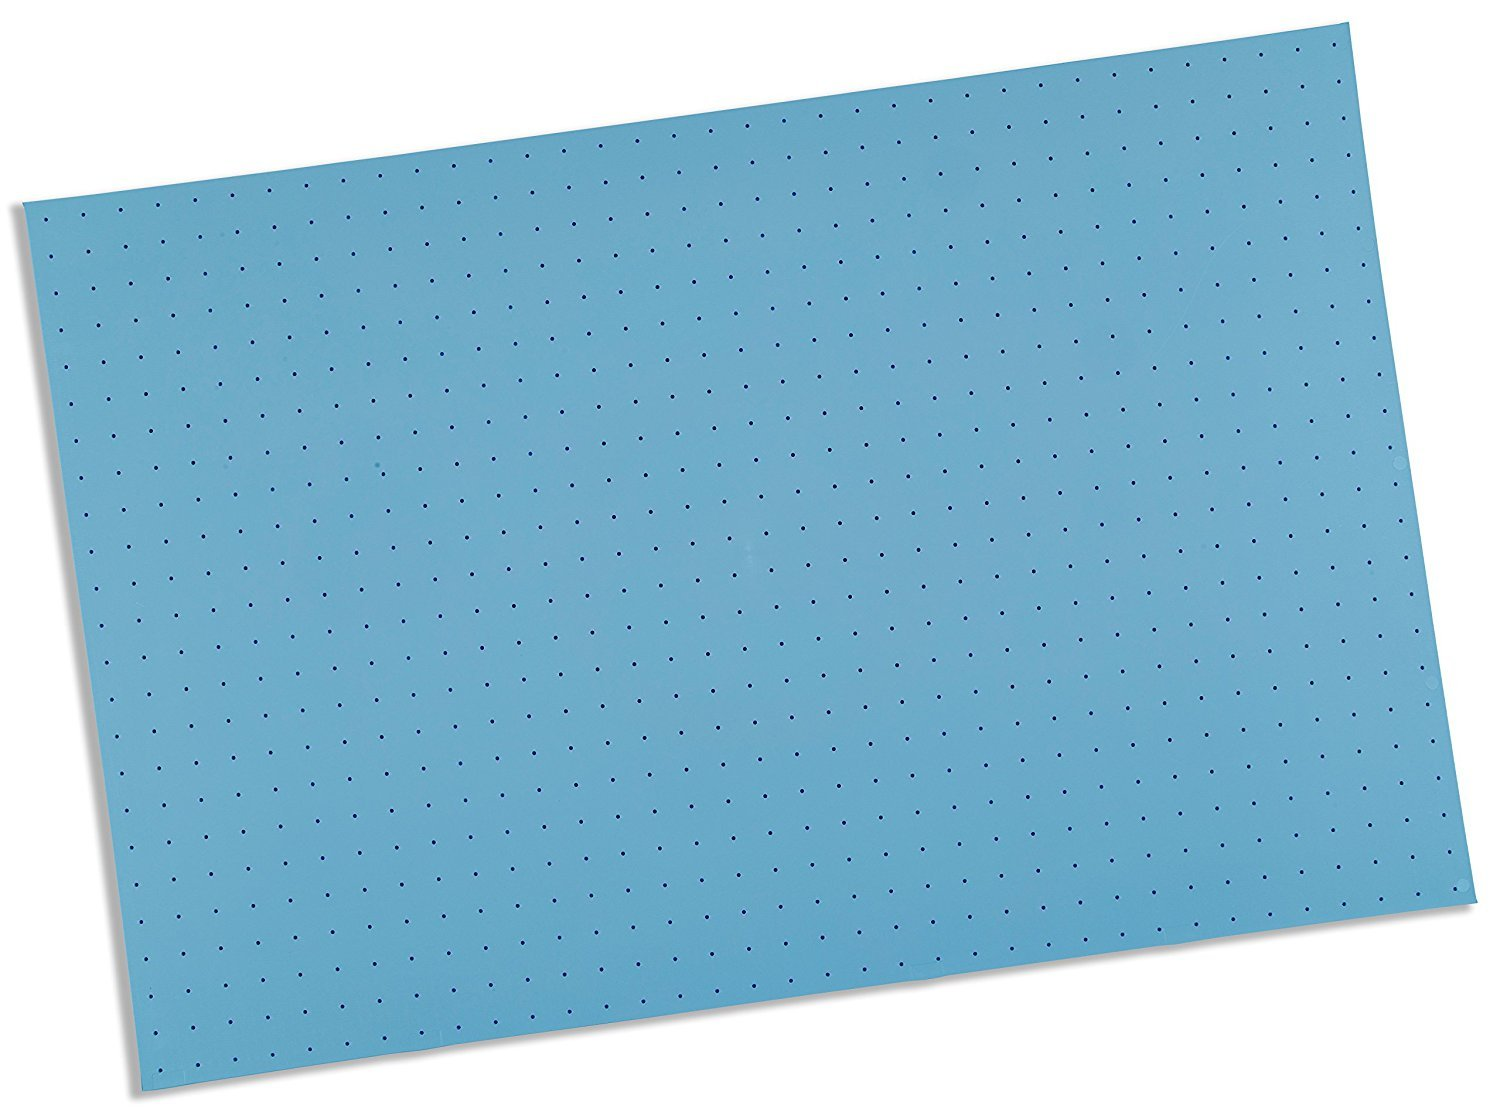 Rolyan Splinting Material Sheet, Ezeform, Blue, 1/8'' x 18'' x 24'', 1% Perforated, Single Sheet